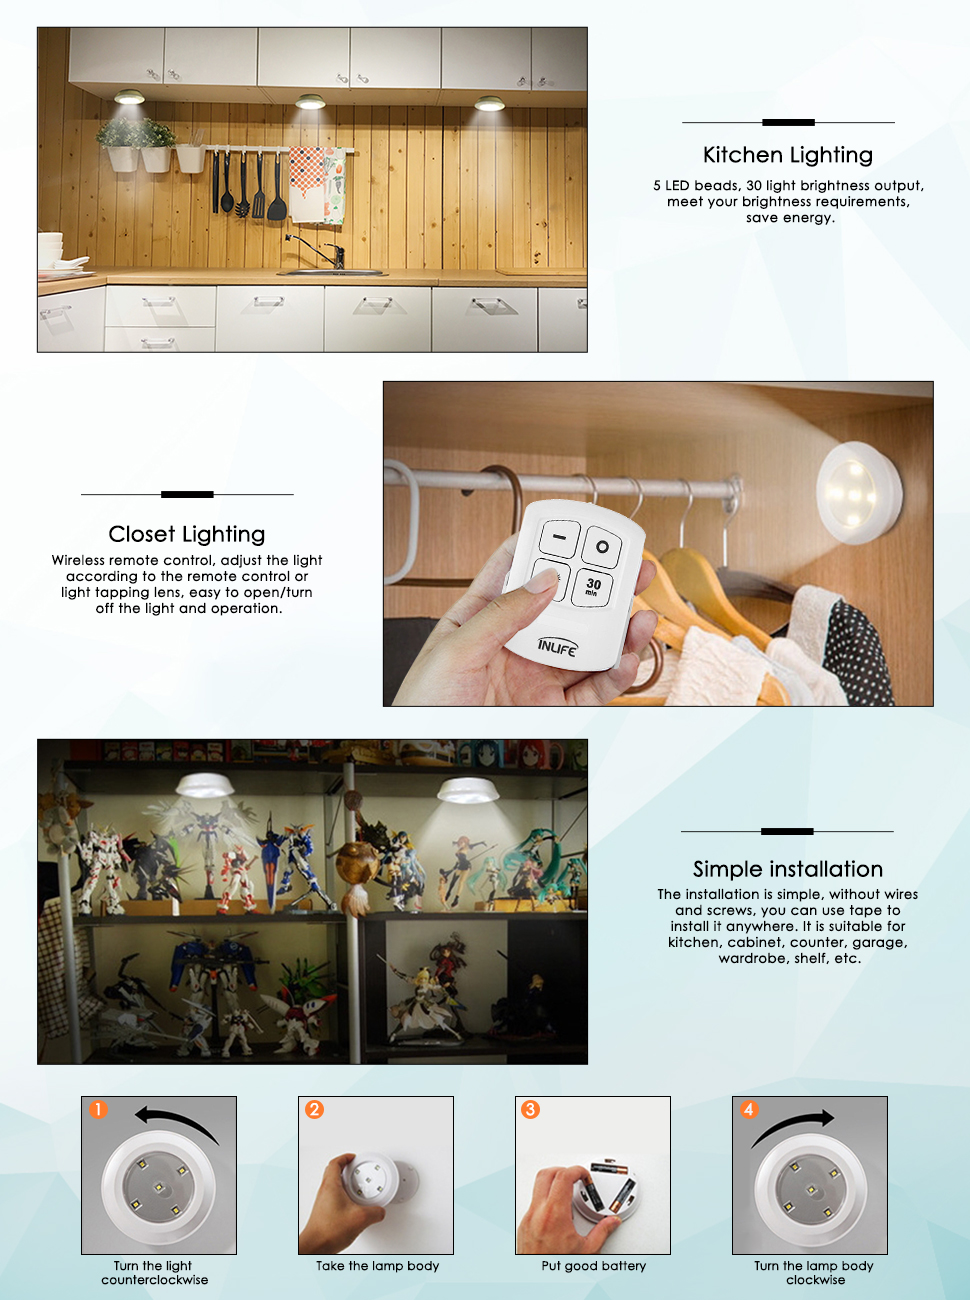 Diligent Wireless 5 Led Night Light Under Cabinet Wardrobe Closet Kitchen Push Touch Tap Night Light Lamp Stick On Battery Power Lights & Lighting